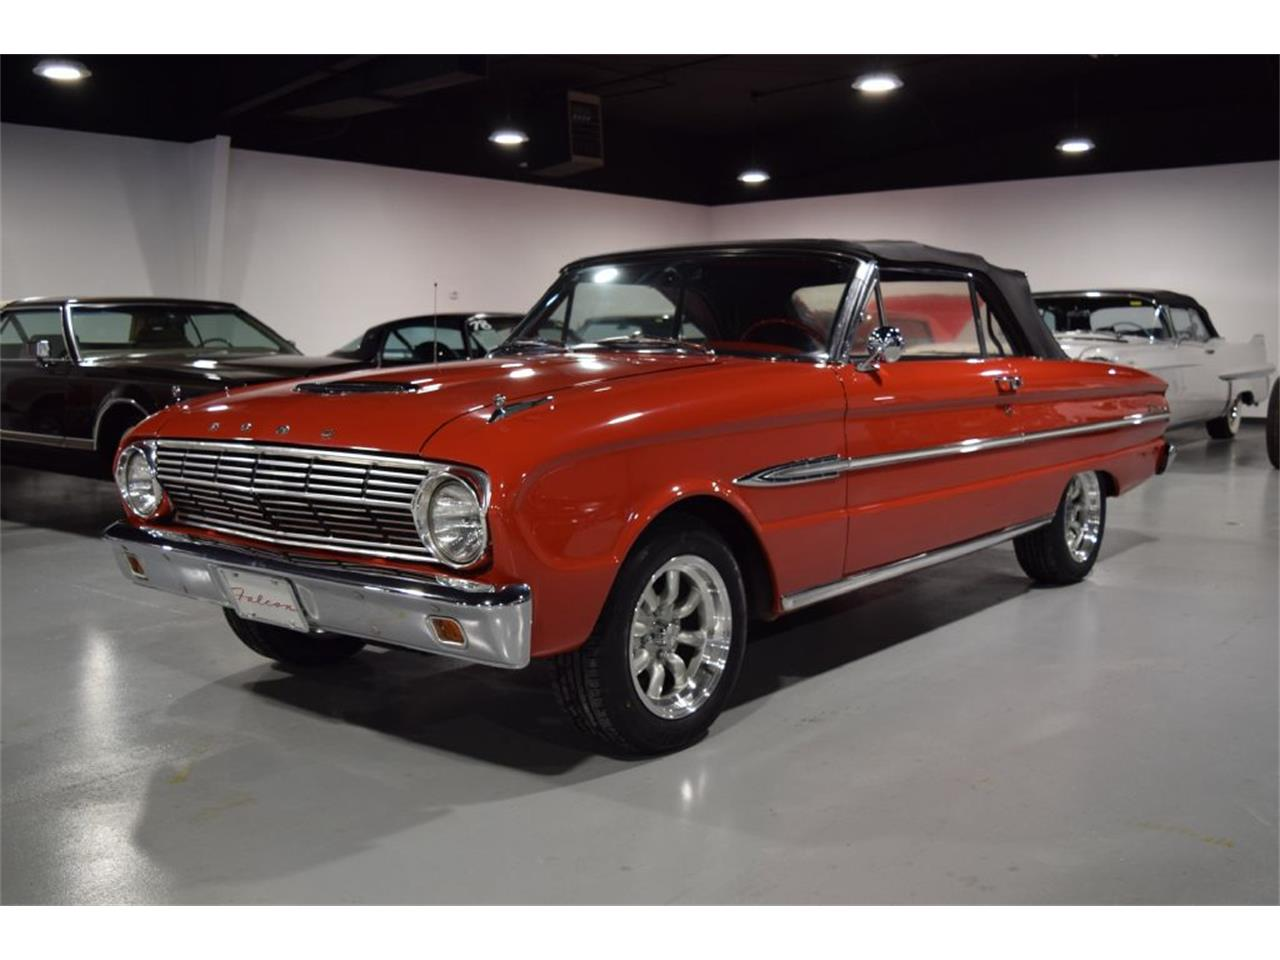 1963 Ford Falcon Futura for sale in Sioux City, IA